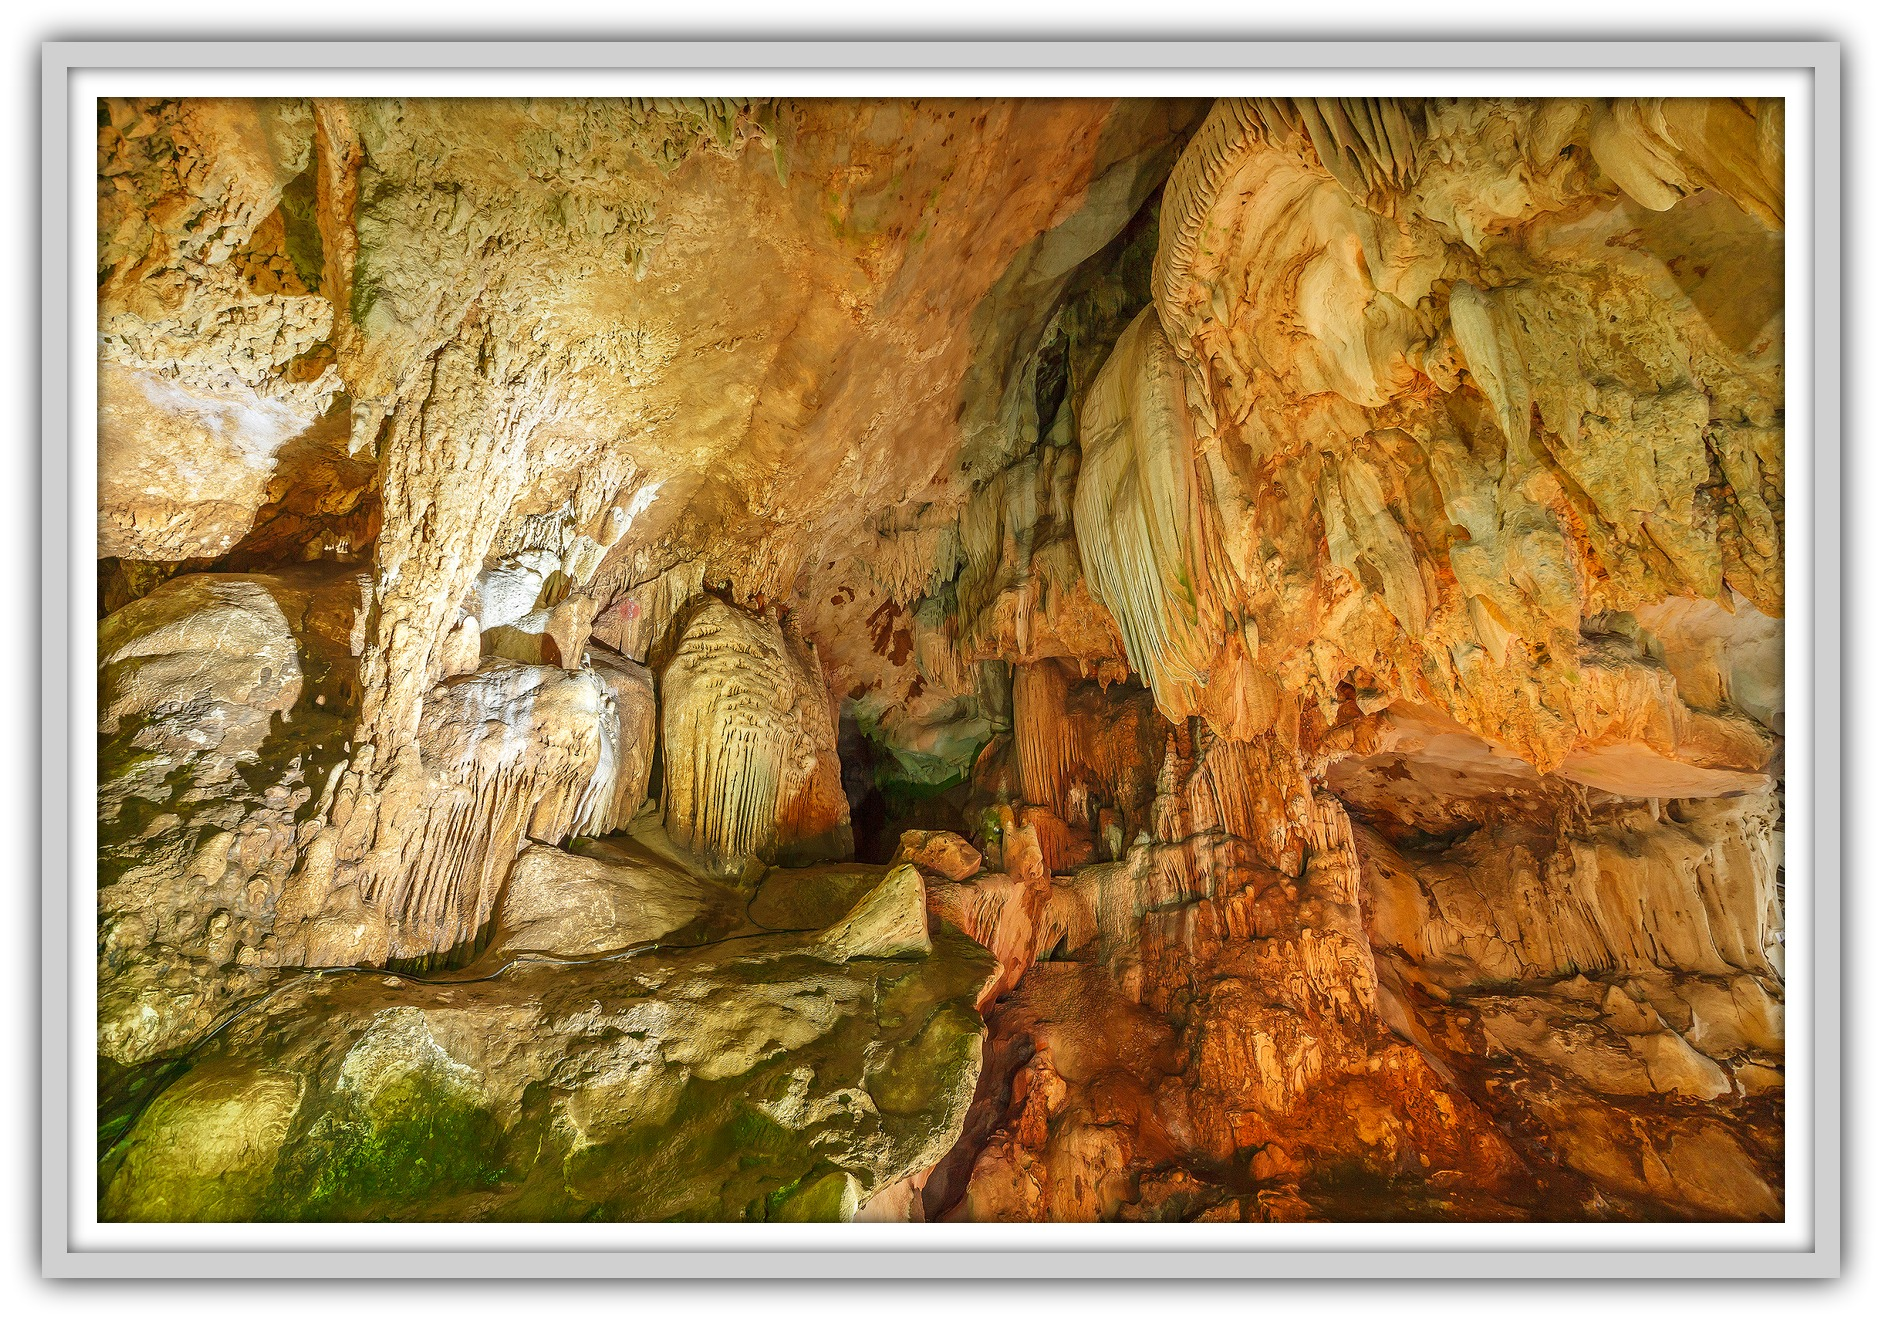 Stalactite rock formations in Lawa Cave. Kanchanaburi province, Thailand.